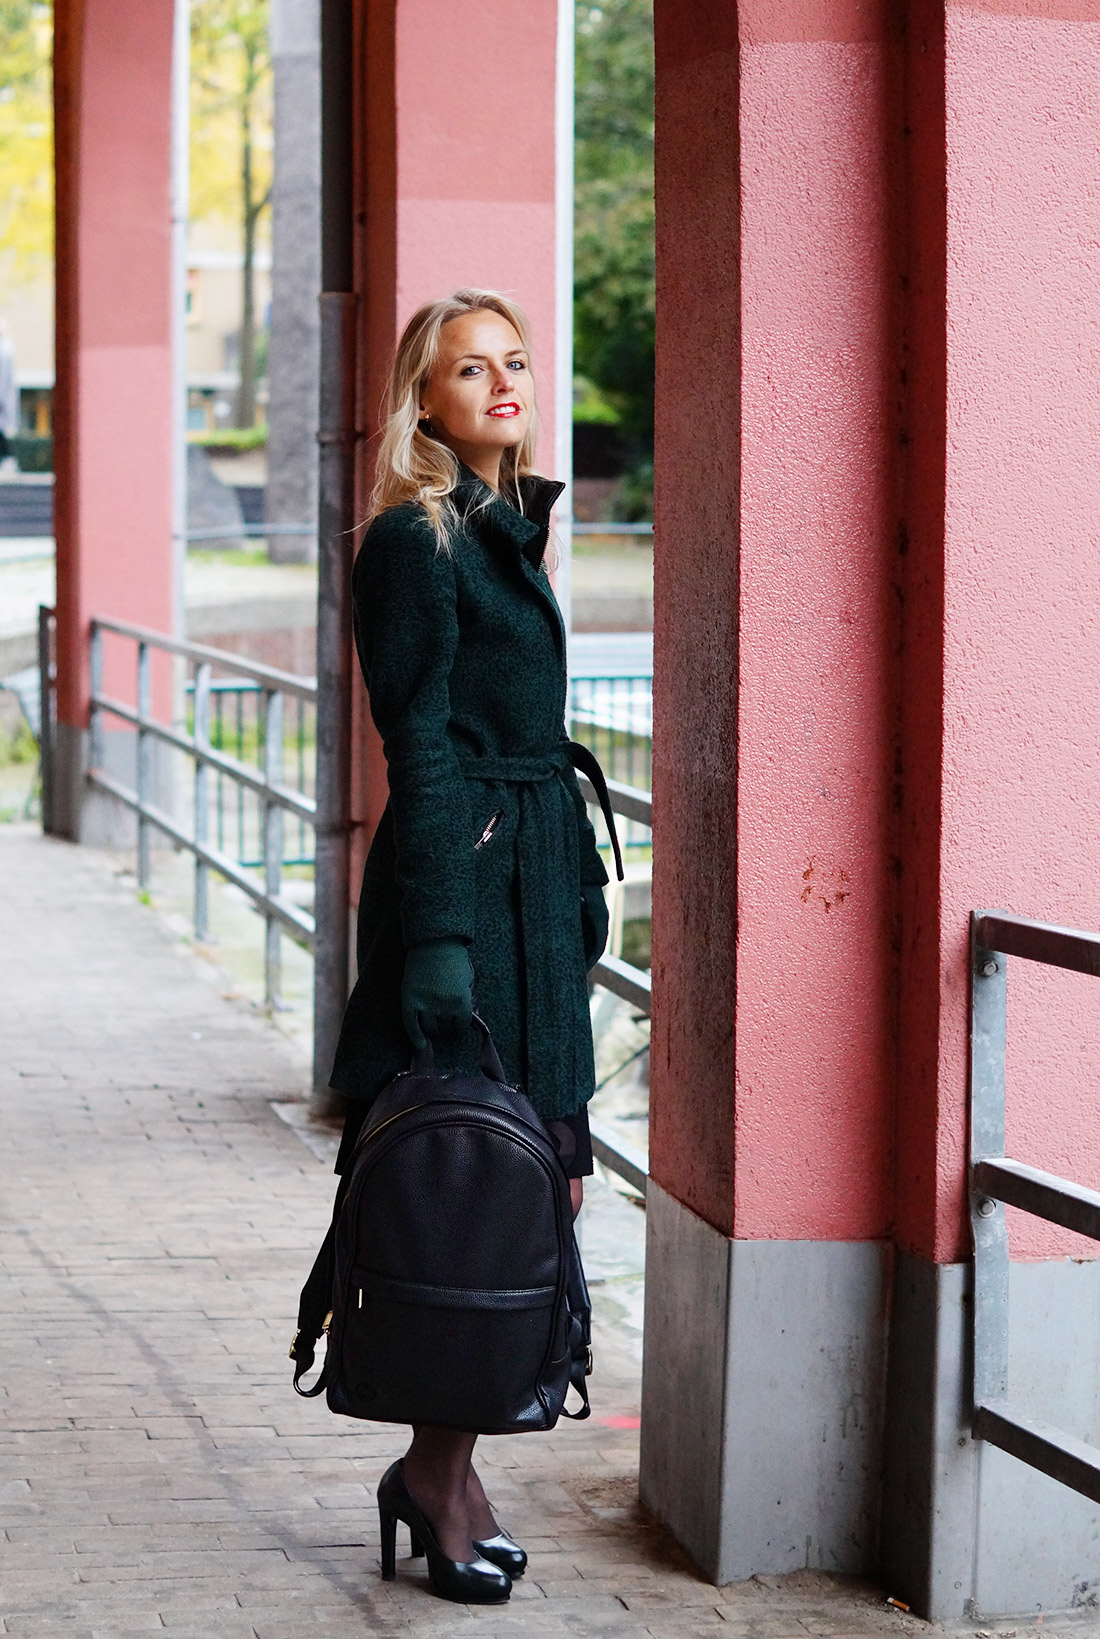 Bag-at-You---Fashion-blog---Mi-Pac-Backpack-Maxwell-Black---Green-Coat-and-gloves---Amsterdam